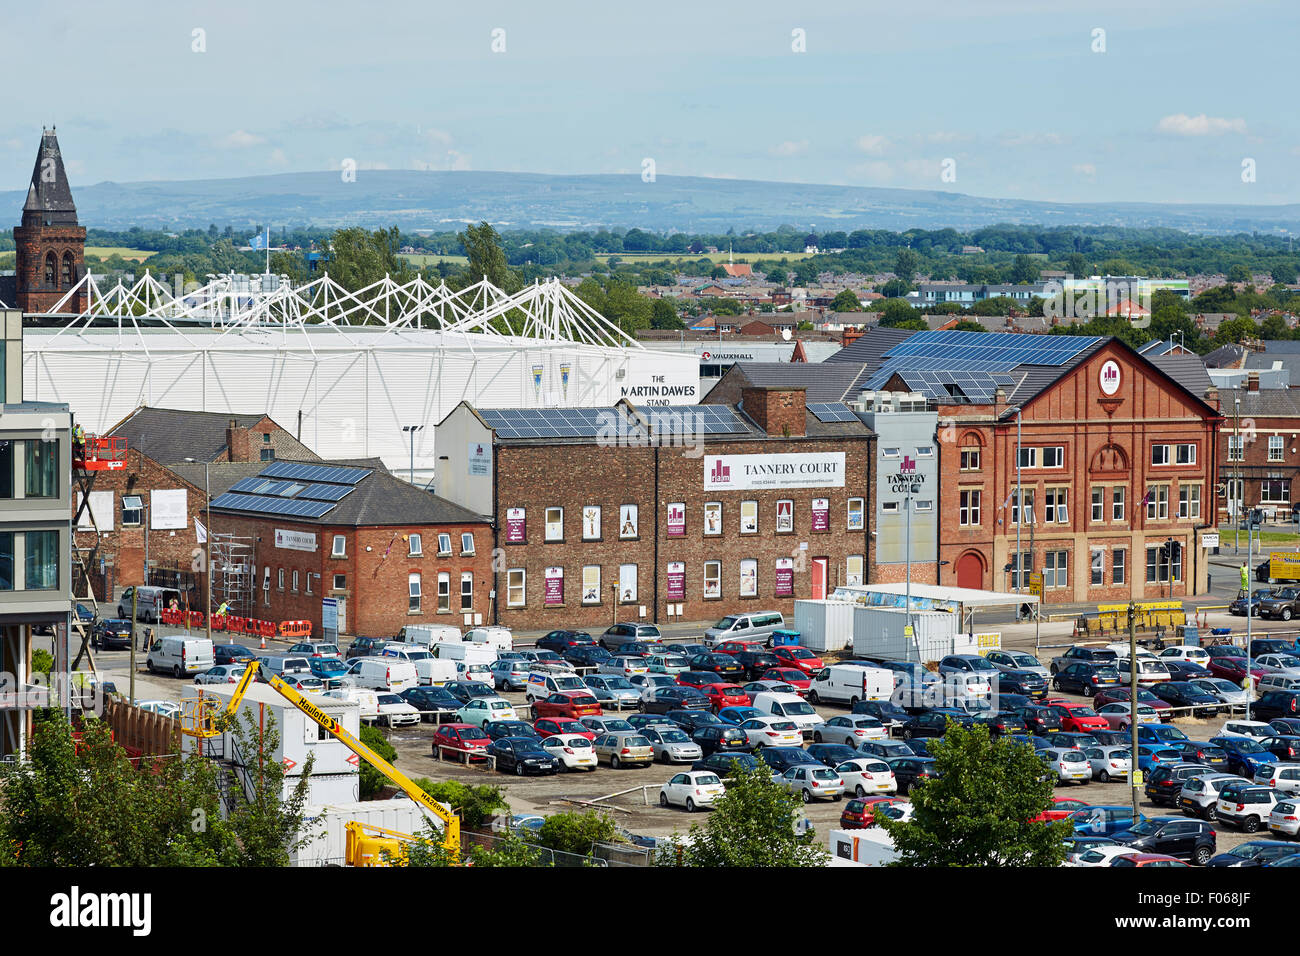 Warrington Skyline view one the shopping centre town in Cheshire uk - Stock Image